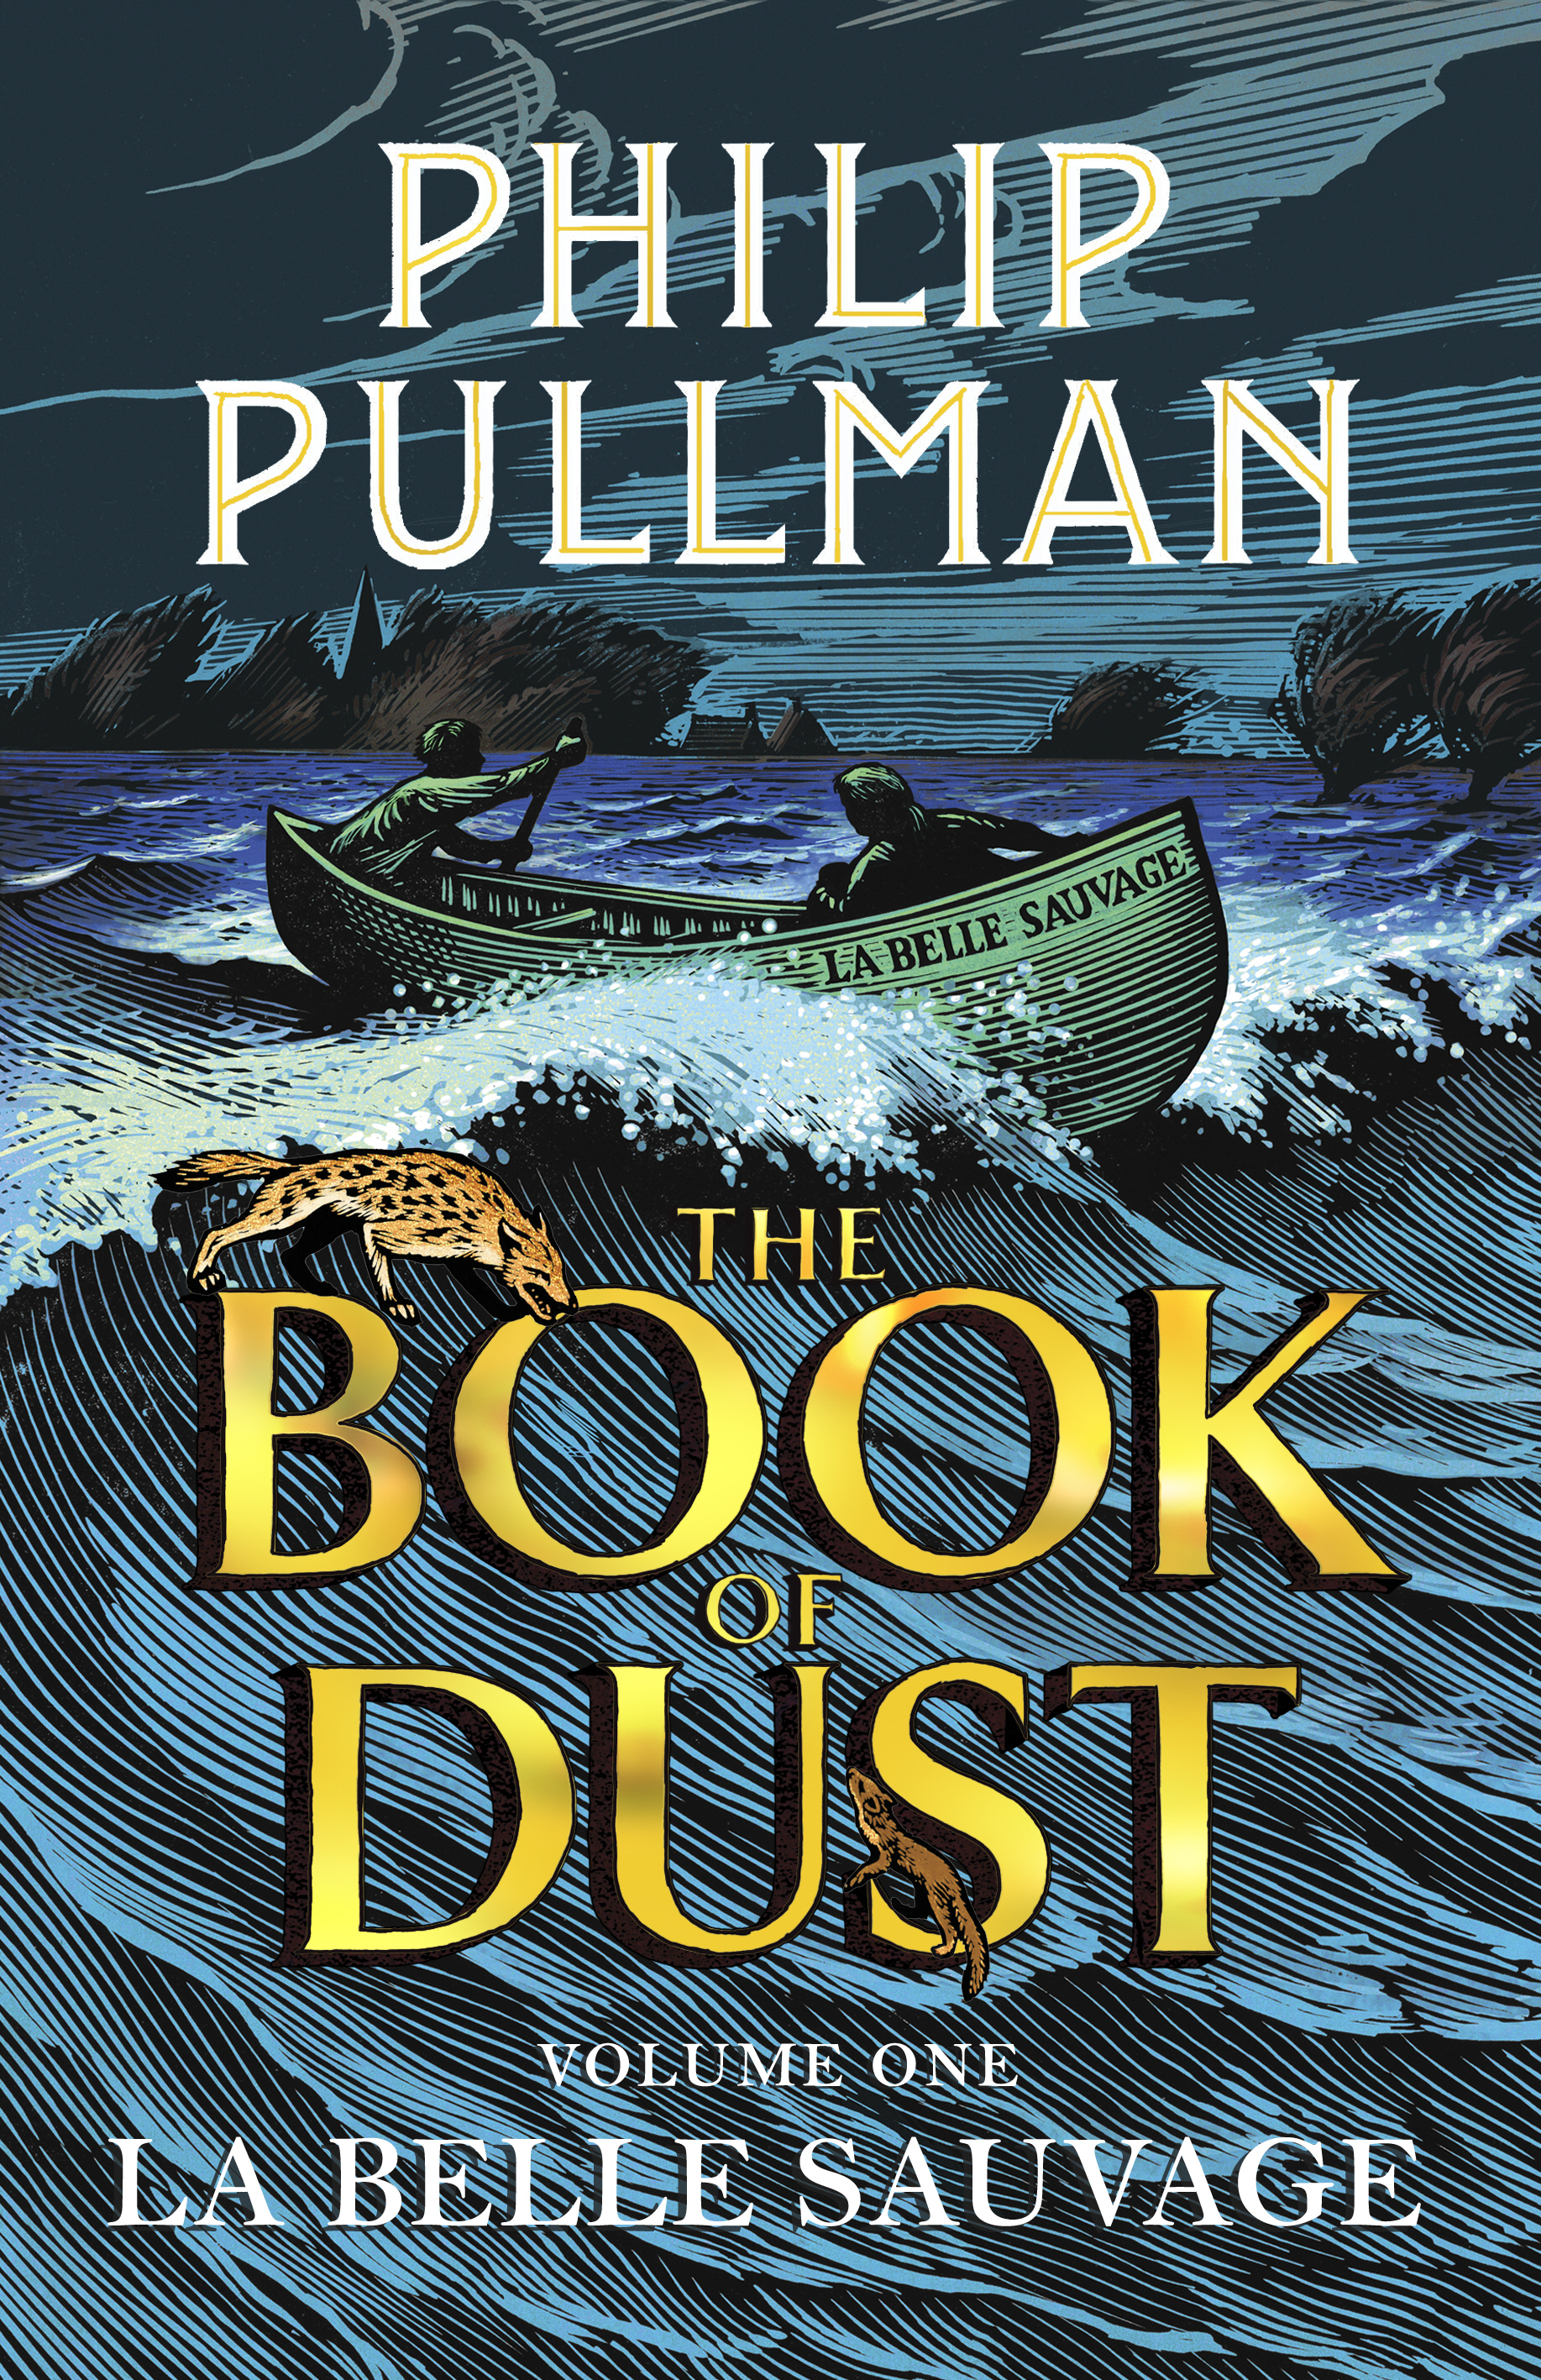 La Belle Sauvage_ The Book of Dust Volume One Cover.jpg